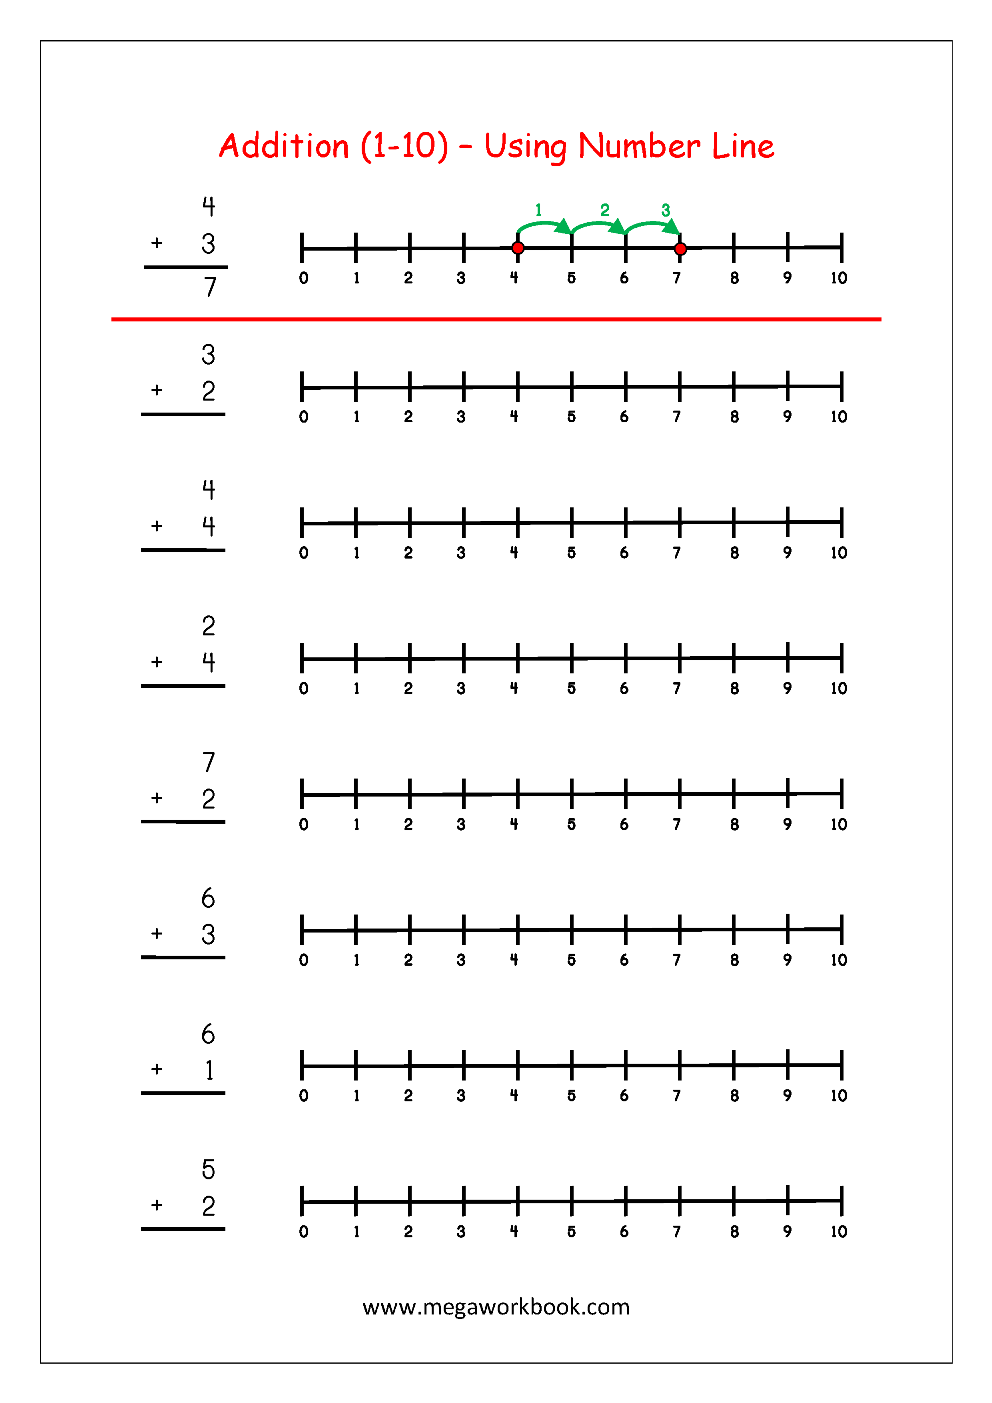 free printable number addition worksheets  for kindergarten   math printable worksheet  addition using number line